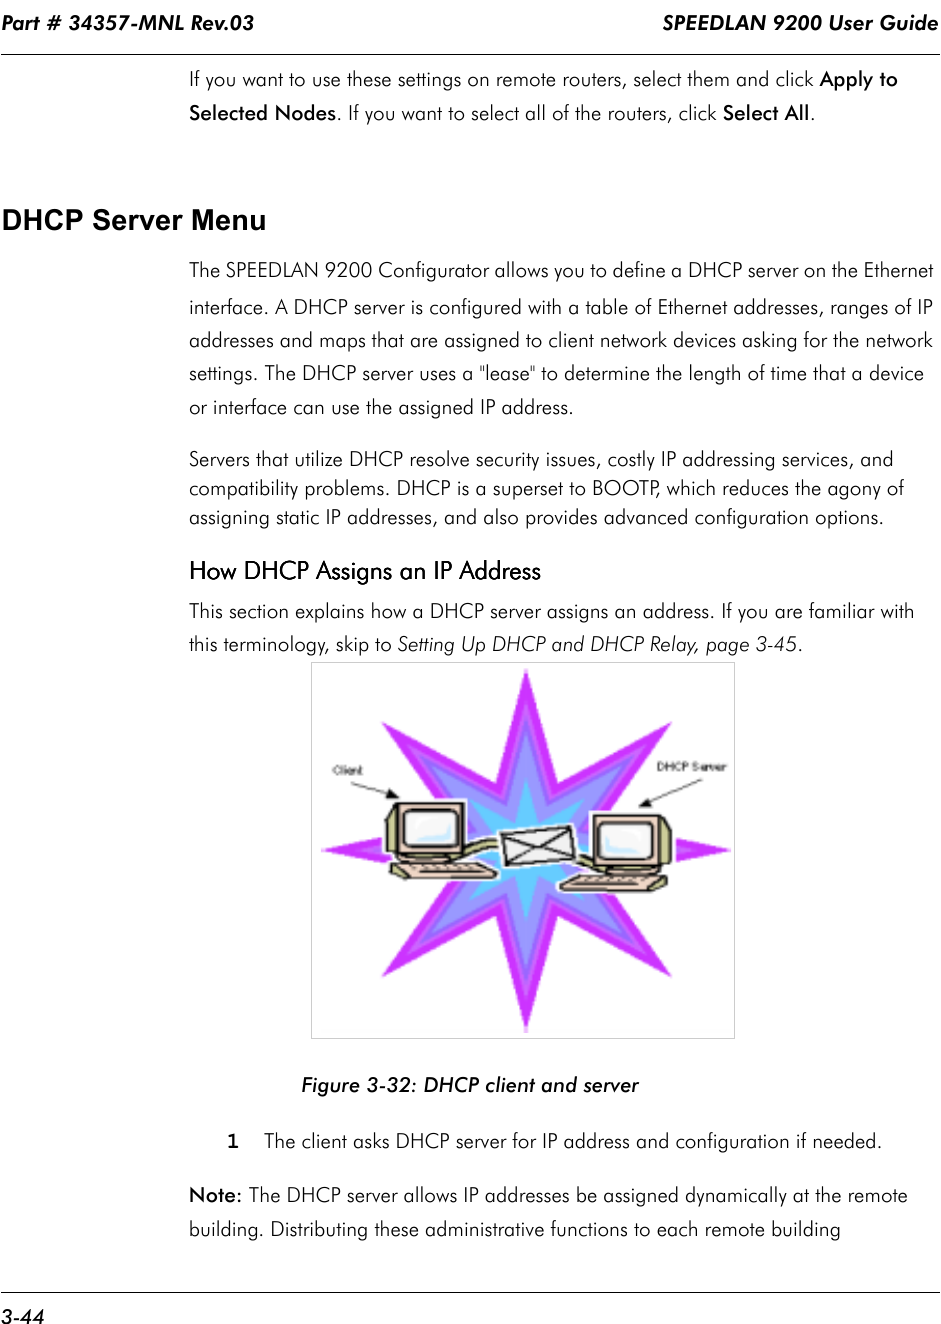 """Part # 34357-MNL Rev.03                                                                   SPEEDLAN 9200 User Guide 3-44If you want to use these settings on remote routers, select them and click Apply to Selected Nodes. If you want to select all of the routers, click Select All. DHCP Server MenuThe SPEEDLAN 9200 Configurator allows you to define a DHCP server on the Ethernet interface. A DHCP server is configured with a table of Ethernet addresses, ranges of IP addresses and maps that are assigned to client network devices asking for the network settings. The DHCP server uses a """"lease"""" to determine the length of time that a device or interface can use the assigned IP address.  Servers that utilize DHCP resolve security issues, costly IP addressing services, and compatibility problems. DHCP is a superset to BOOTP, which reduces the agony of assigning static IP addresses, and also provides advanced configuration options. How DHCP Assigns an IP AddressHow DHCP Assigns an IP AddressHow DHCP Assigns an IP AddressHow DHCP Assigns an IP AddressThis section explains how a DHCP server assigns an address. If you are familiar with this terminology, skip to Setting Up DHCP and DHCP Relay, page 3-45. Figure 3-32: DHCP client and server 1The client asks DHCP server for IP address and configuration if needed. Note: The DHCP server allows IP addresses be assigned dynamically at the remote building. Distributing these administrative functions to each remote building"""